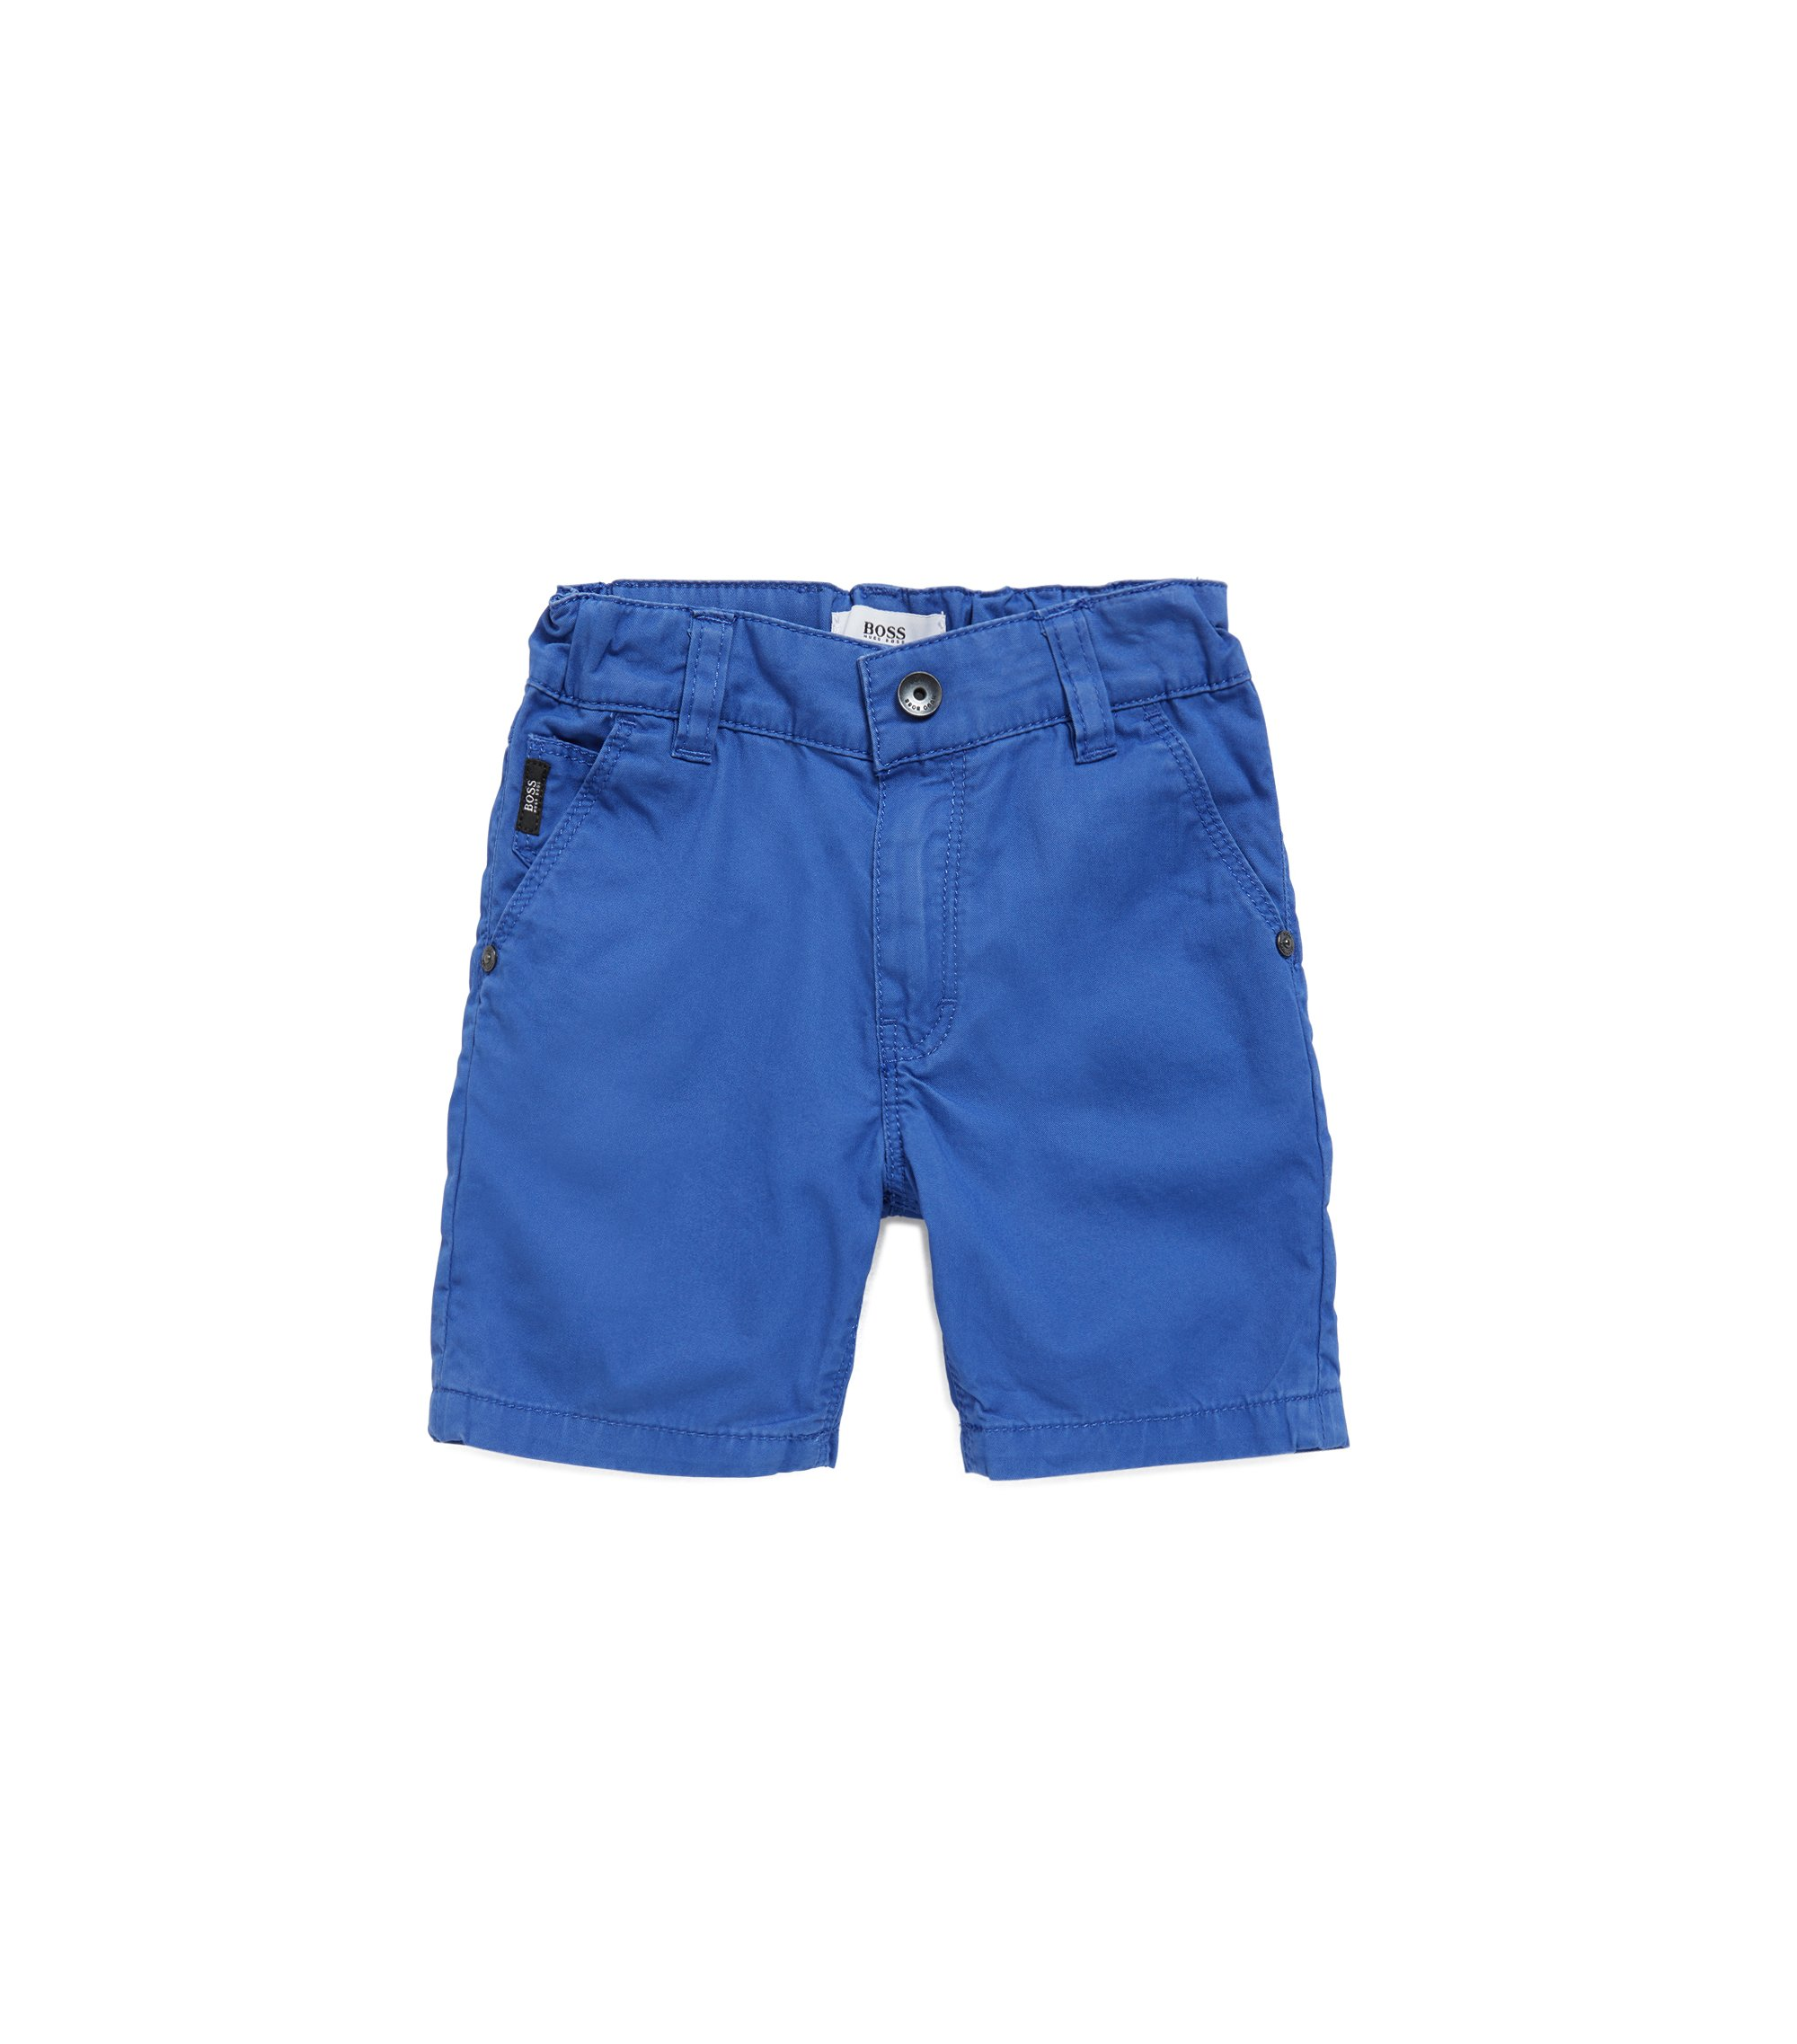 Kids' Bermuda shorts in cotton twill, Blue